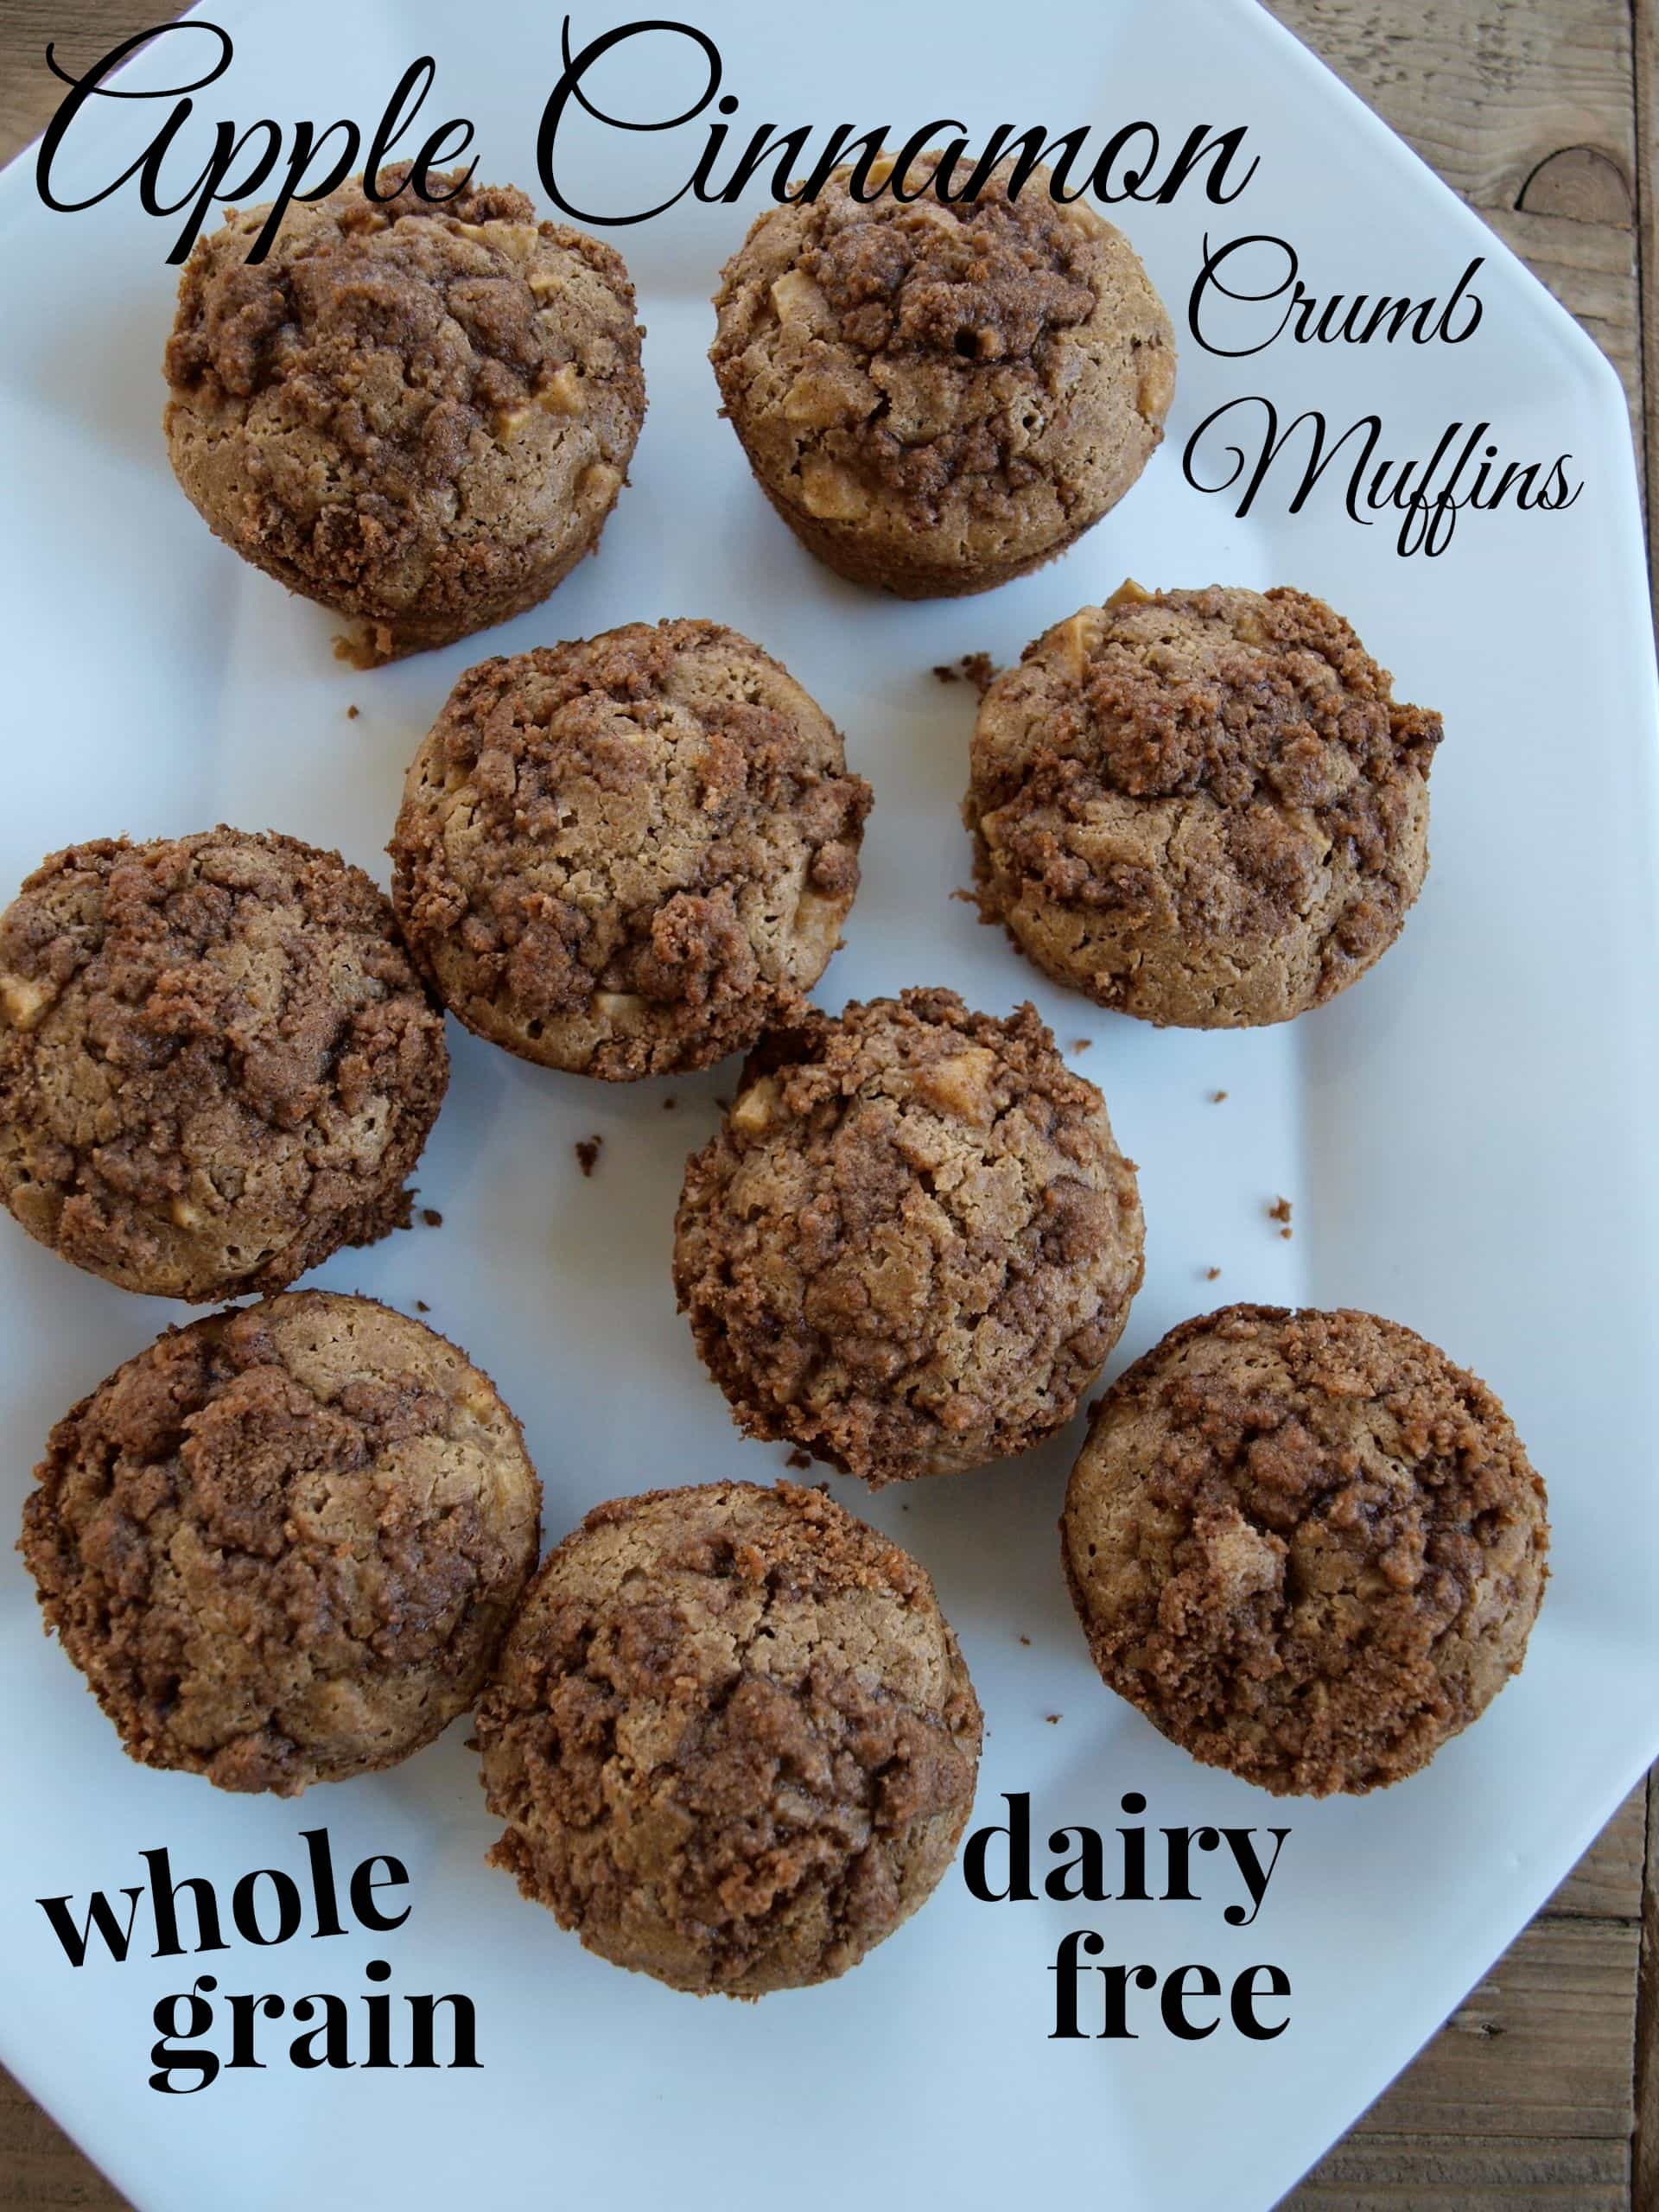 Healthy Apple Cinnamon Crumb Muffins. Whole grain and dairy-free.